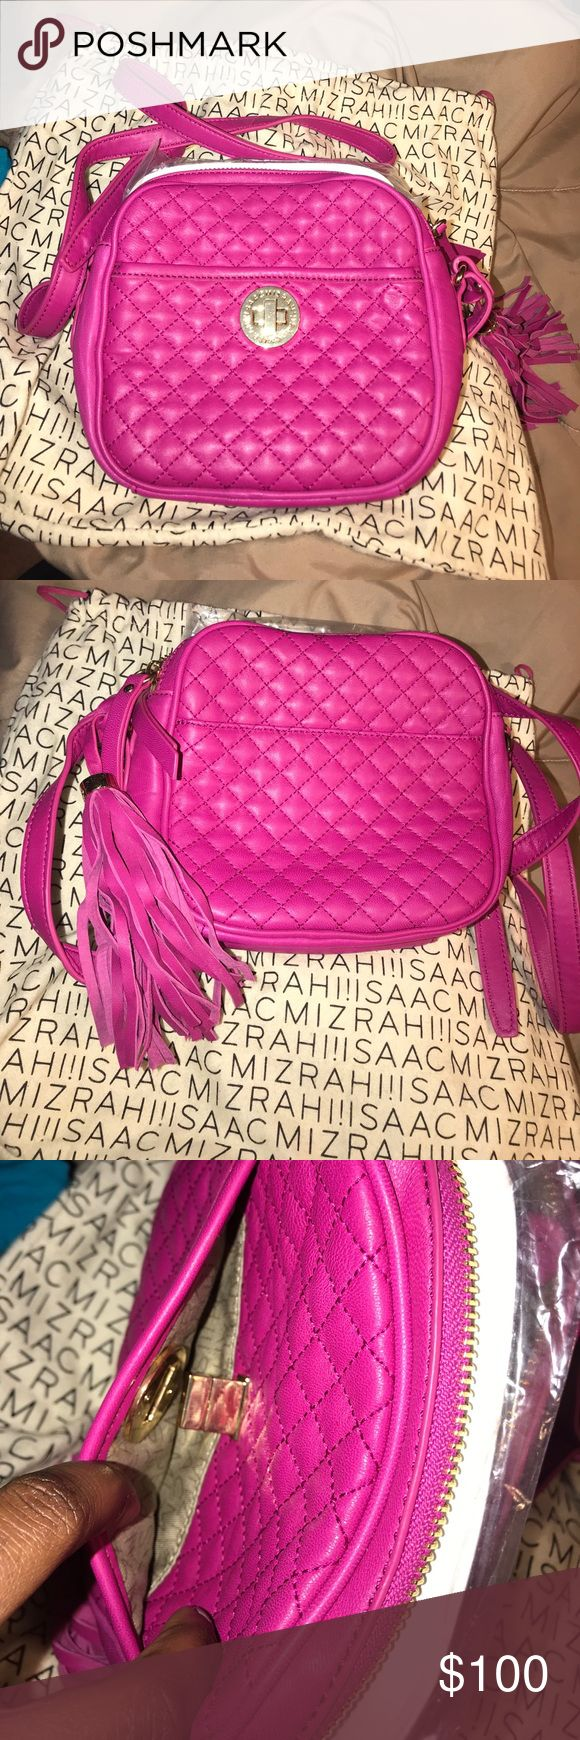 Isaac Mizrahi Bridgehampton Quilted Leather Bag Isaac Mizrahi Live! Bridgehampton Quilted Leather Camera Bag in Bright Berry. 100% Leather / Lining 80% Polyester 20% Cotton Tassel Detail/ Chrome Lick Closure/ Adjustable Crossbody strap Back and front slip pockets/Double top zipper closure Logo Lining /Two Compartments From QVC bag was bought at $160 and is on the website being sold for $110 Isaac Mizrahi Bags Crossbody Bags